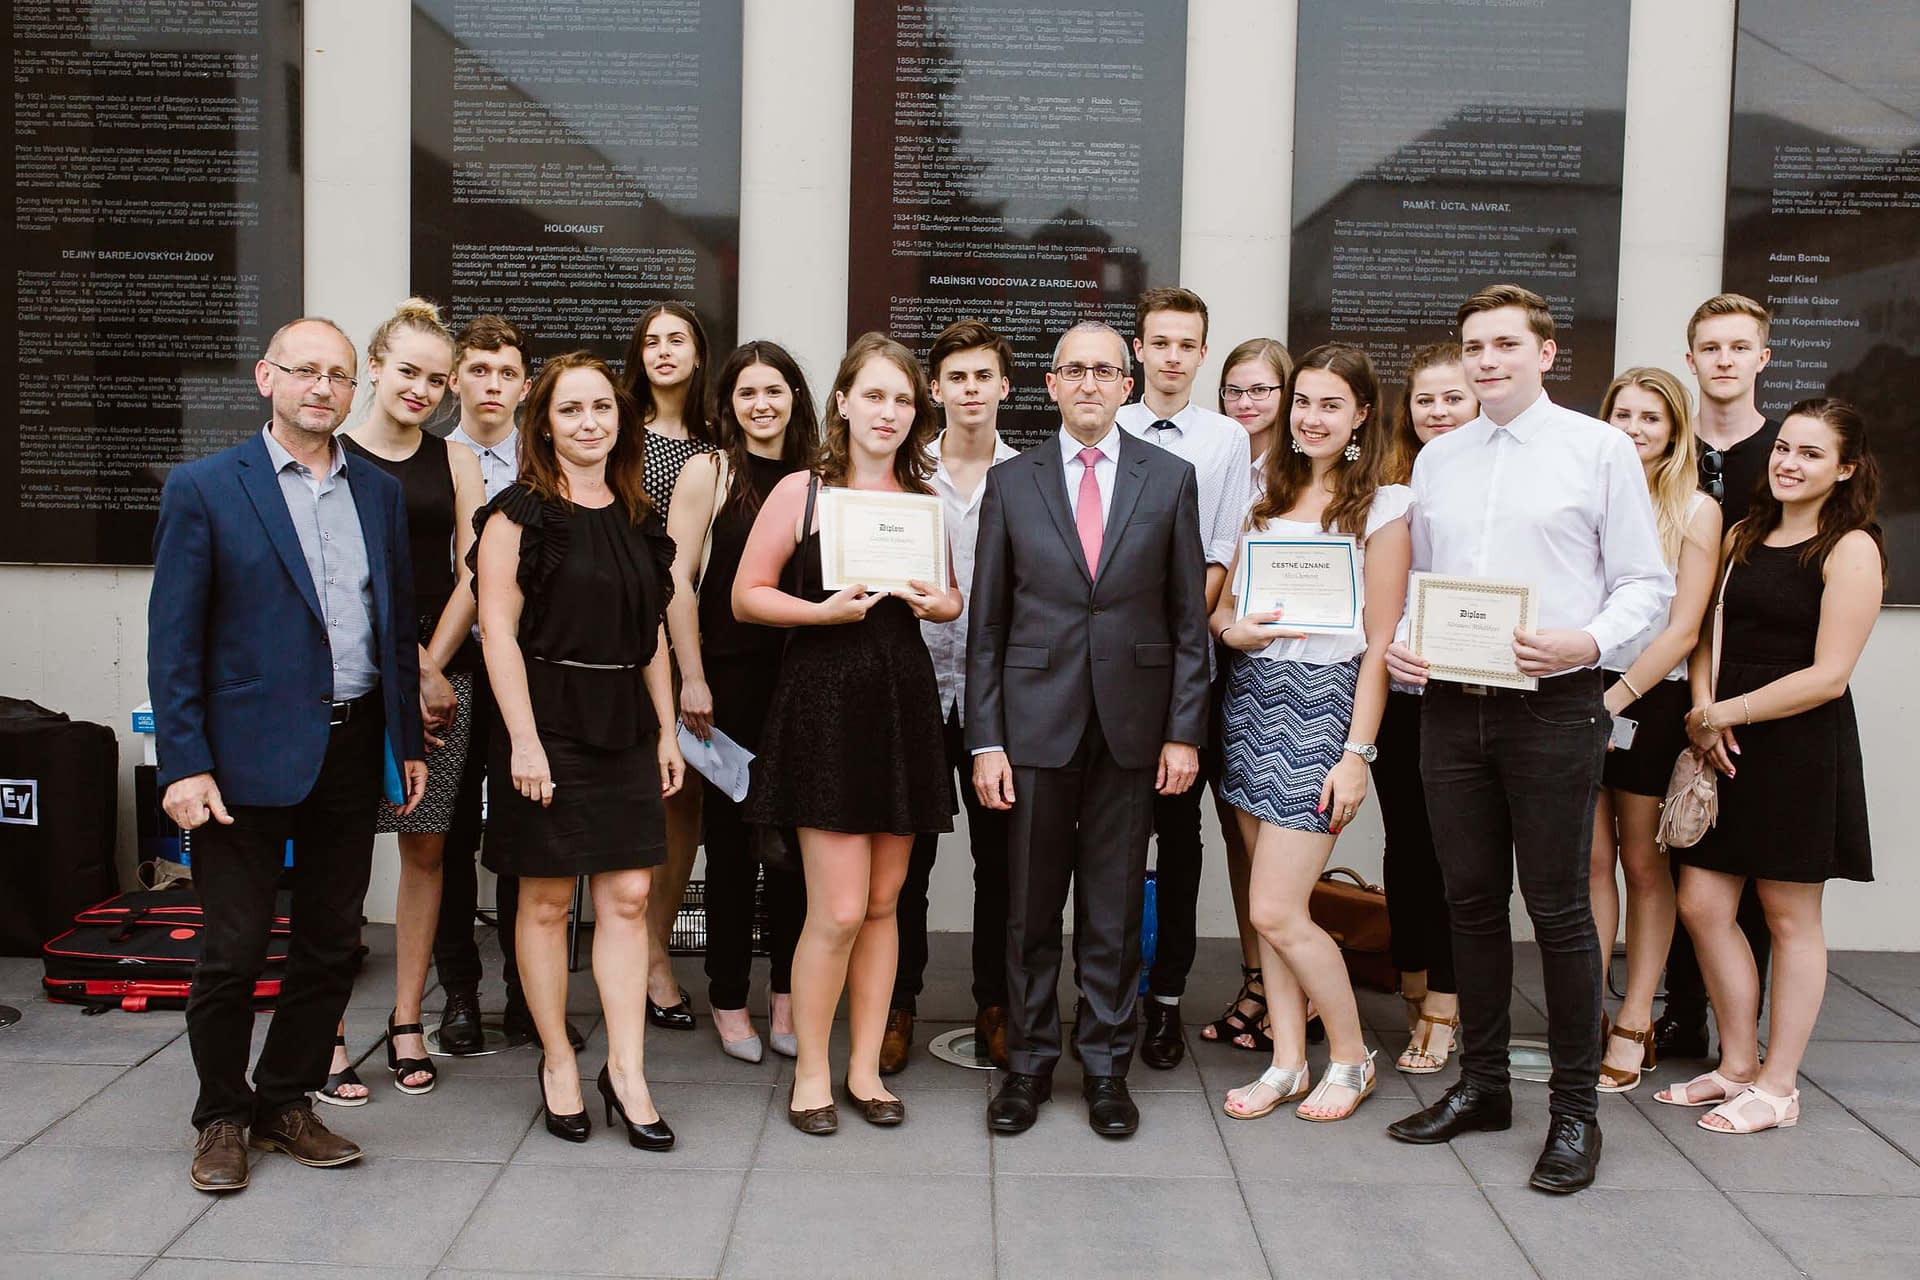 Students and Essay contest participants with H.E. Zvi Aviner Vapni